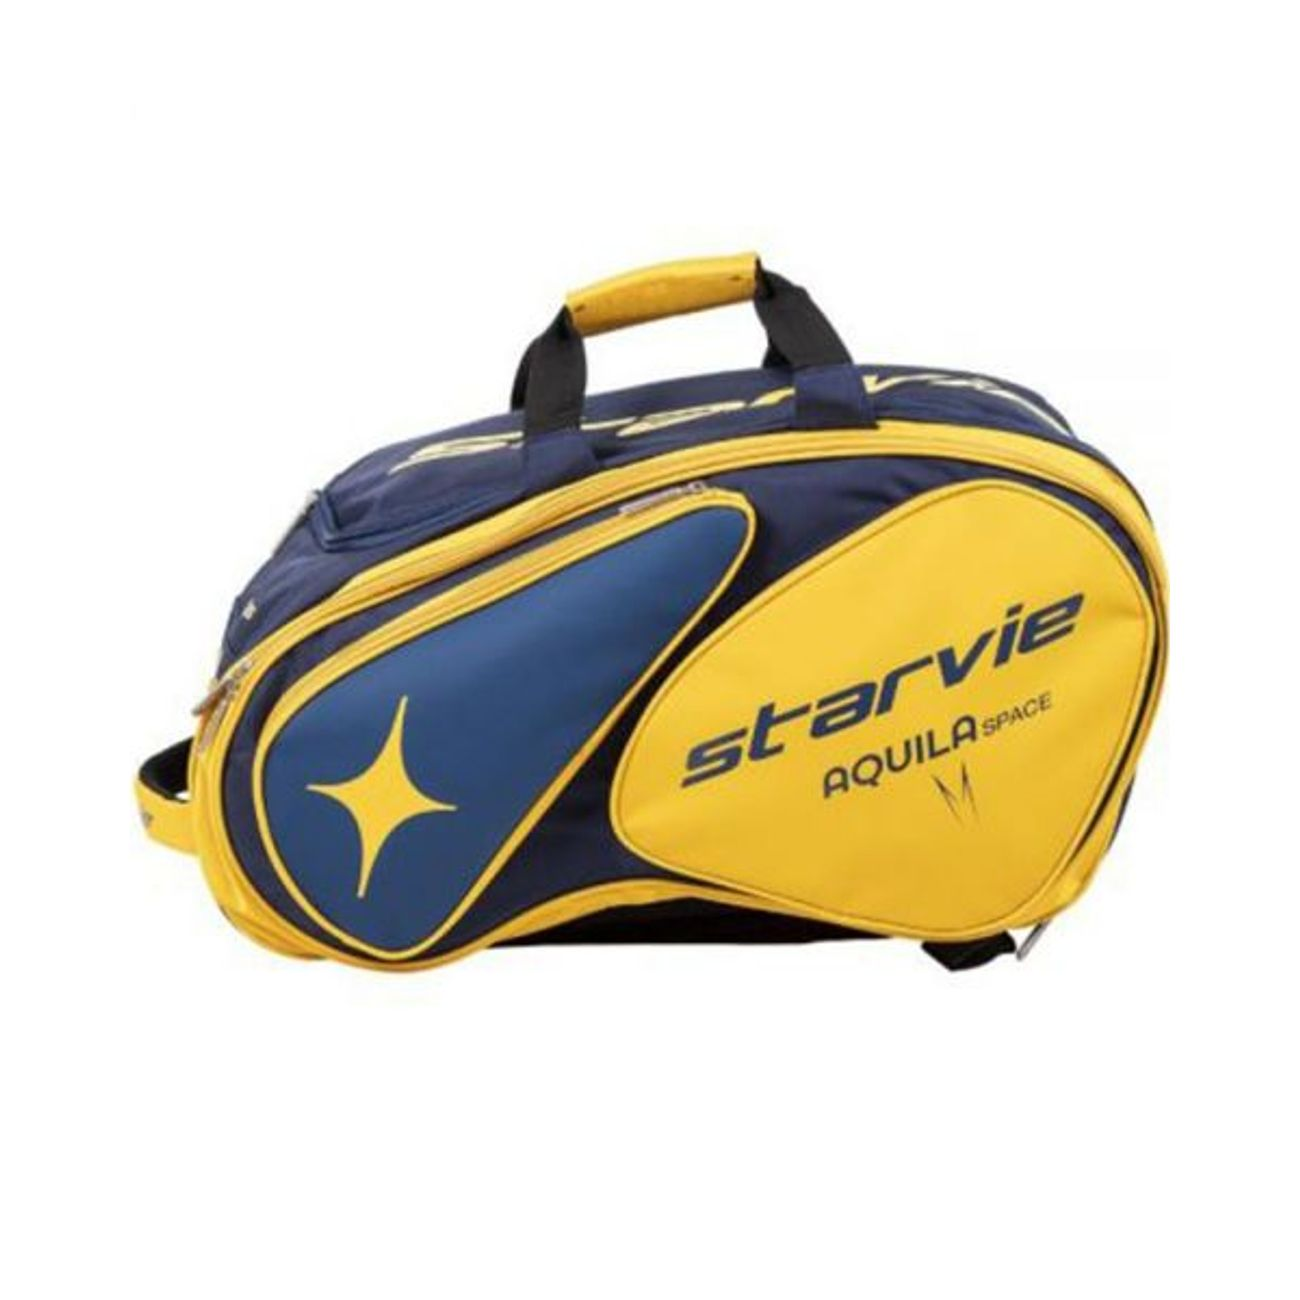 Padel  STAR VIE SAC DE PADEL STAR VIE POCKET BAG AQUILA